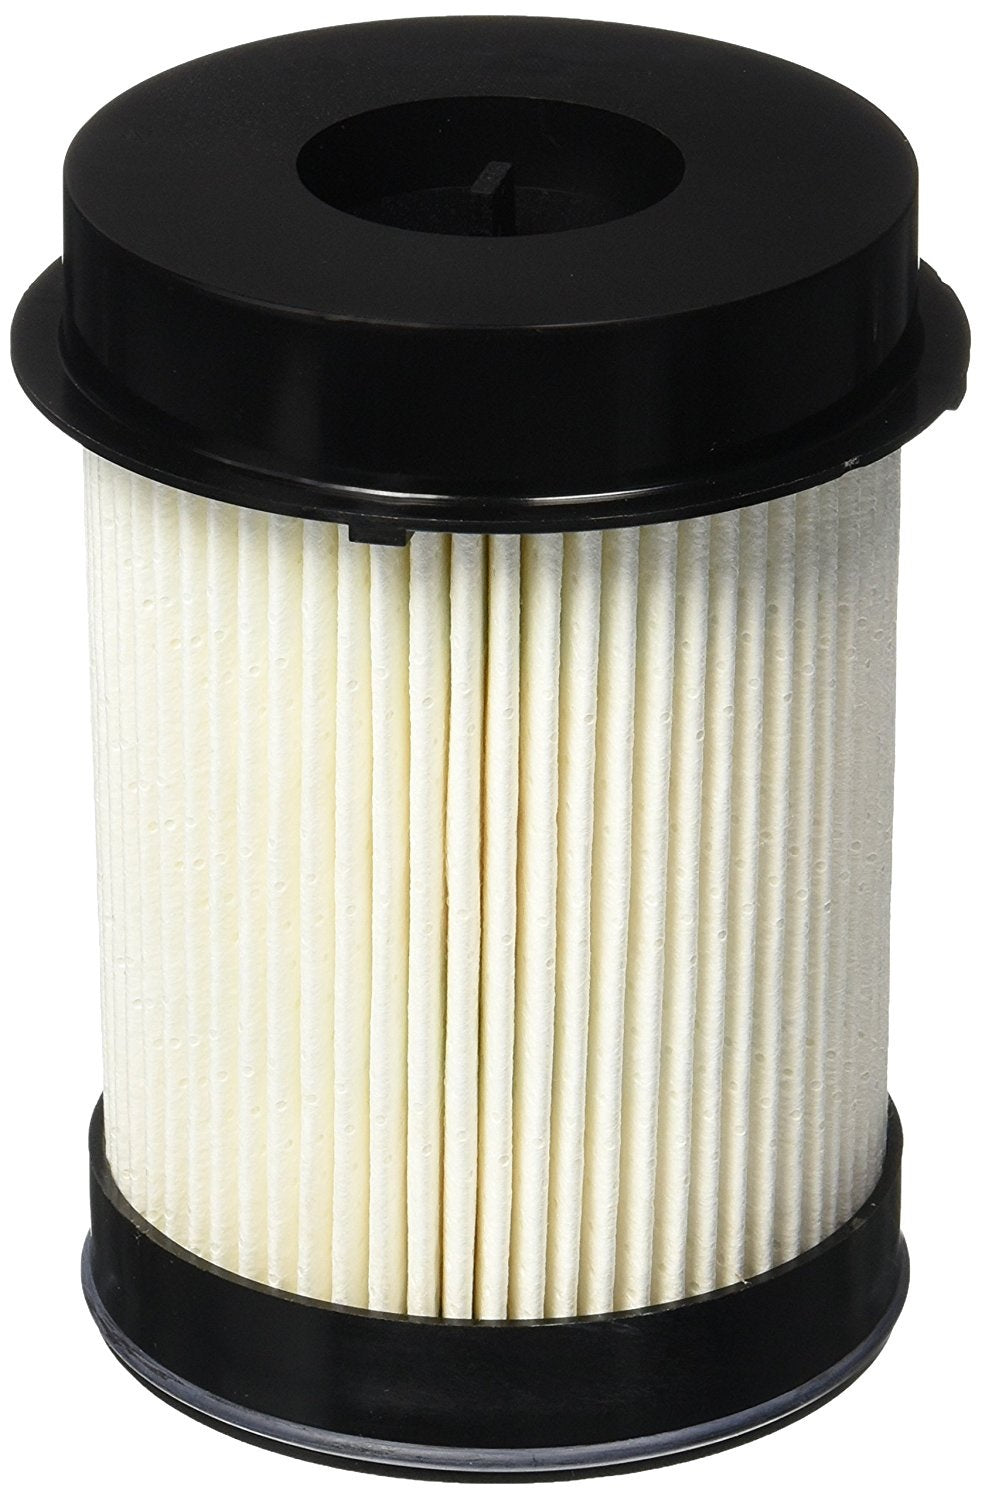 dodge fuel filter pf9870 baldwin fuel filter dodge 6 7l turbo diesel dodge fuel filter replacement instructions pf9870 baldwin fuel filter dodge 6 7l